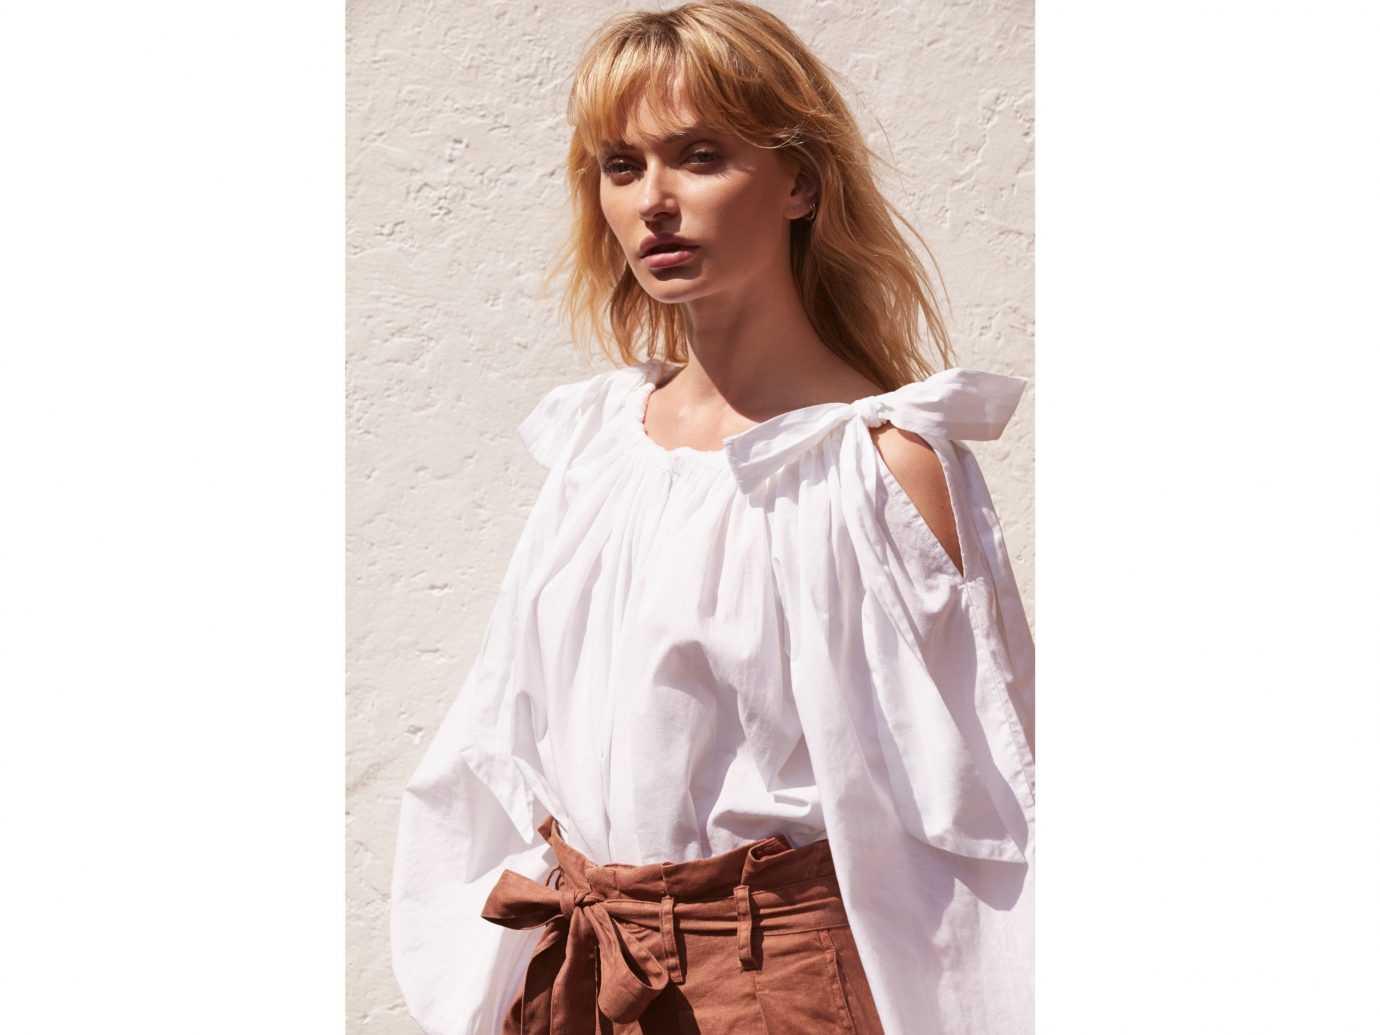 Style + Design person clothing dress outdoor fashion model shoulder joint blouse girl neck wearing sleeve top supermodel long hair dressed model lady posing